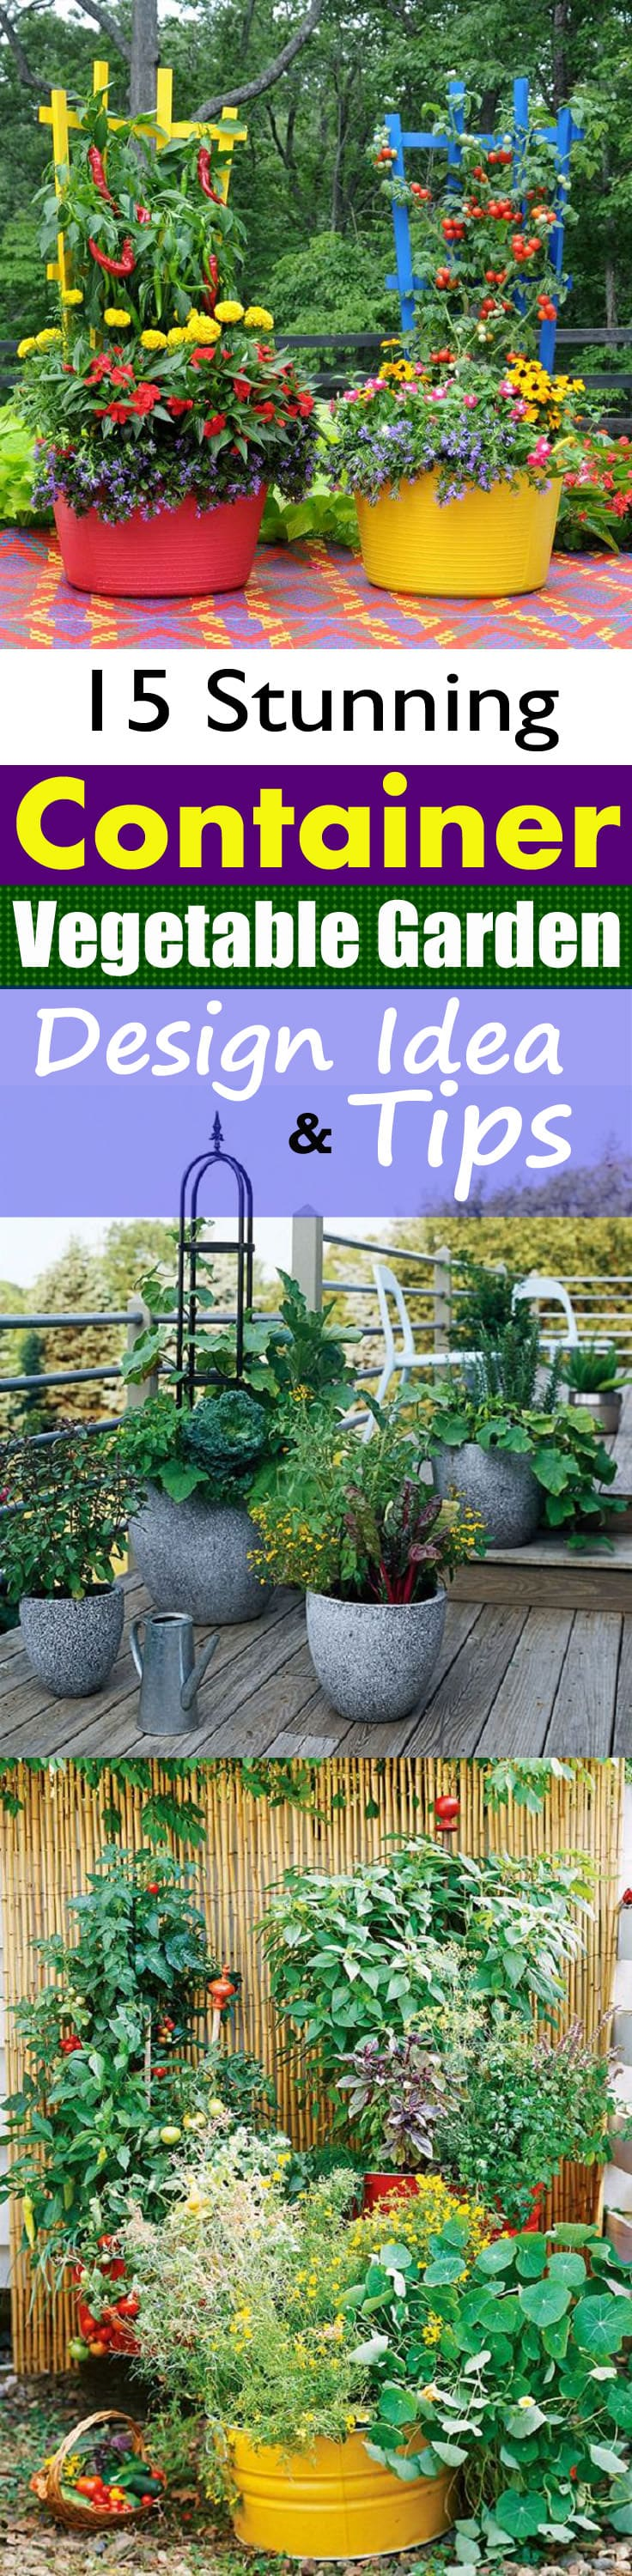 Create a Container Vegetable Garden that gives you a bountiful harvest of fresh homegrown vegetables and herbs in limited space and also looks appealing and aesthetic!